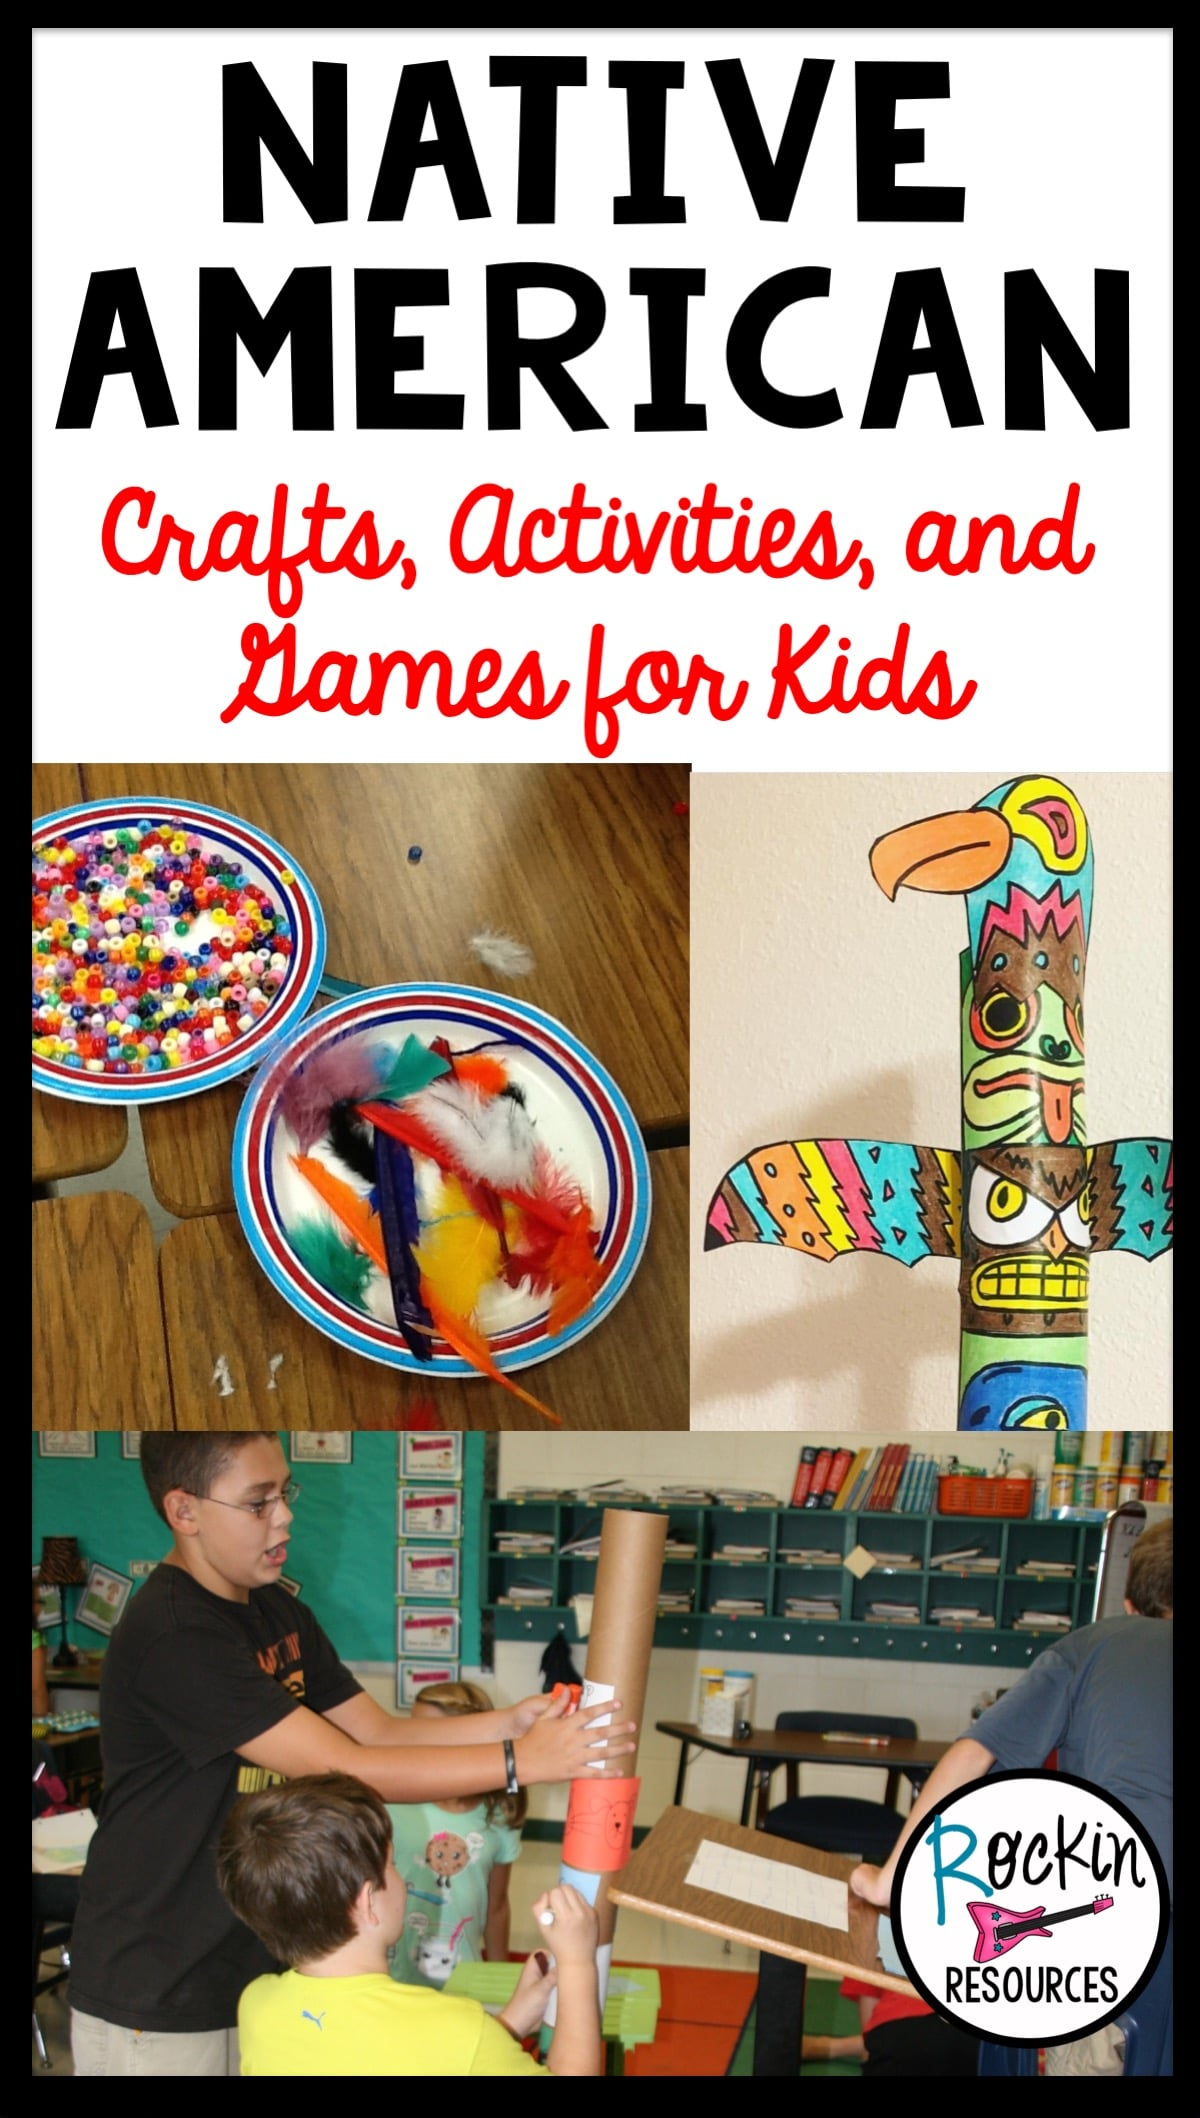 Native American Crafts Activities And Games For Kids